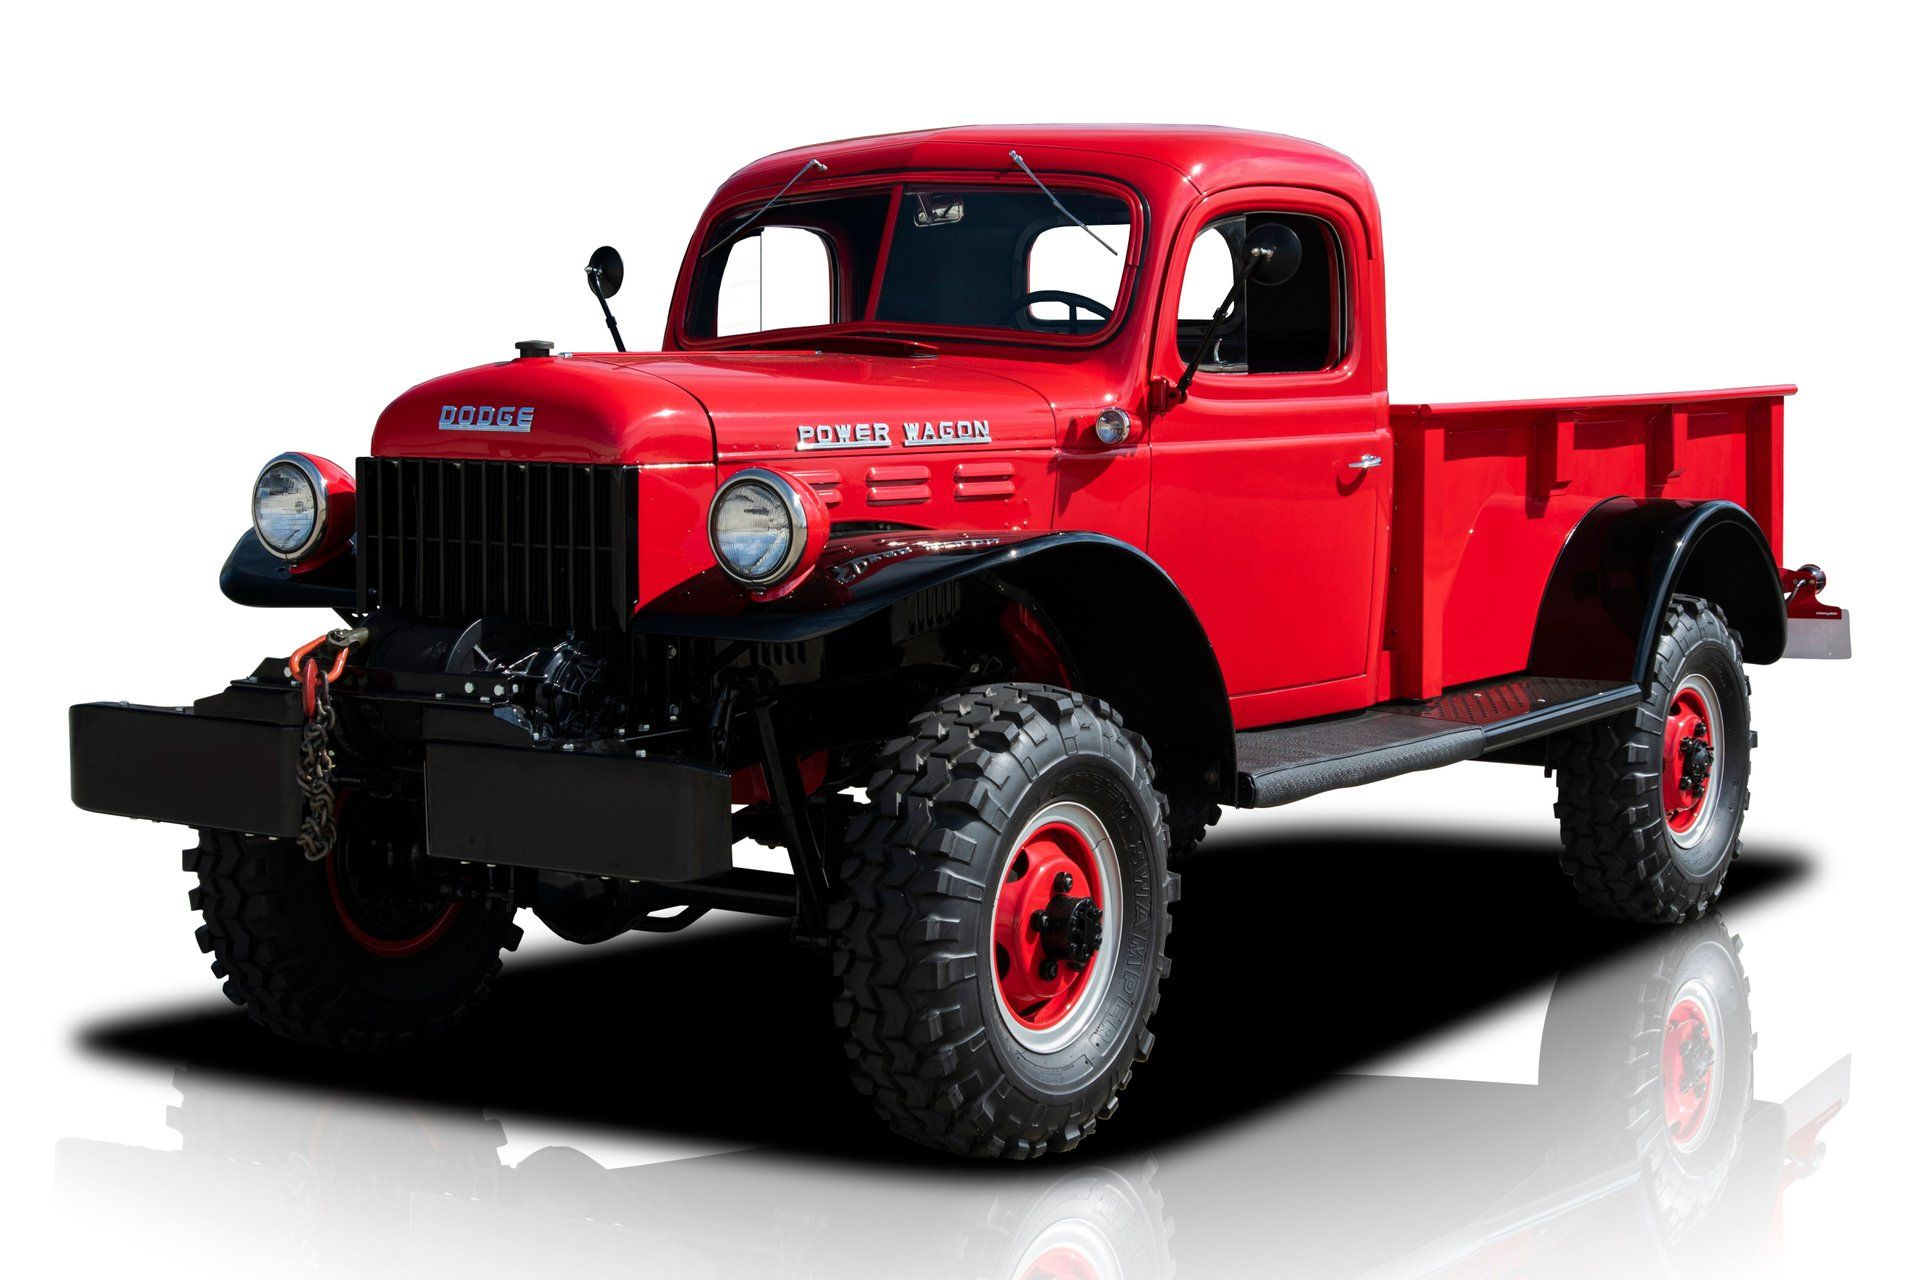 Stay Battle Ready In A Restored 1952 Dodge Power Wagon 4x4